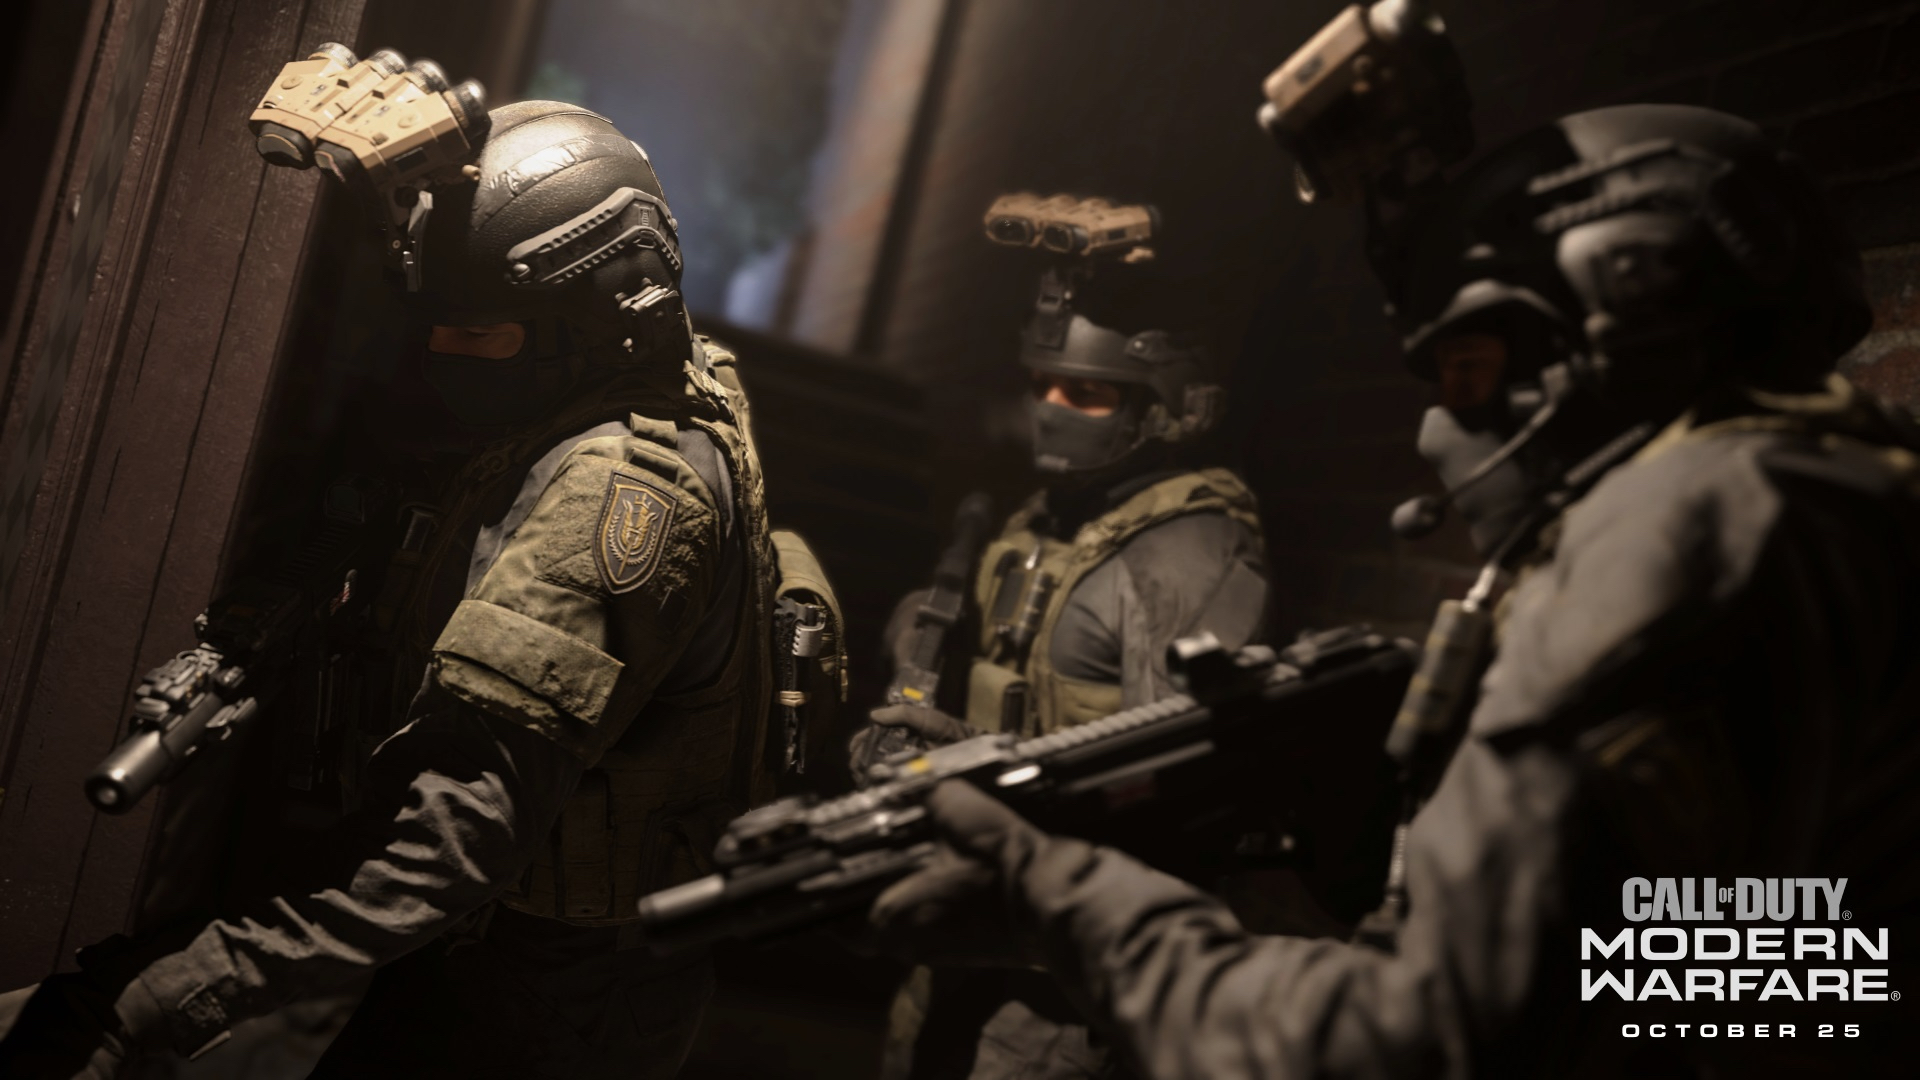 A new trailer for Call of Duty: Modern Warfare has been released